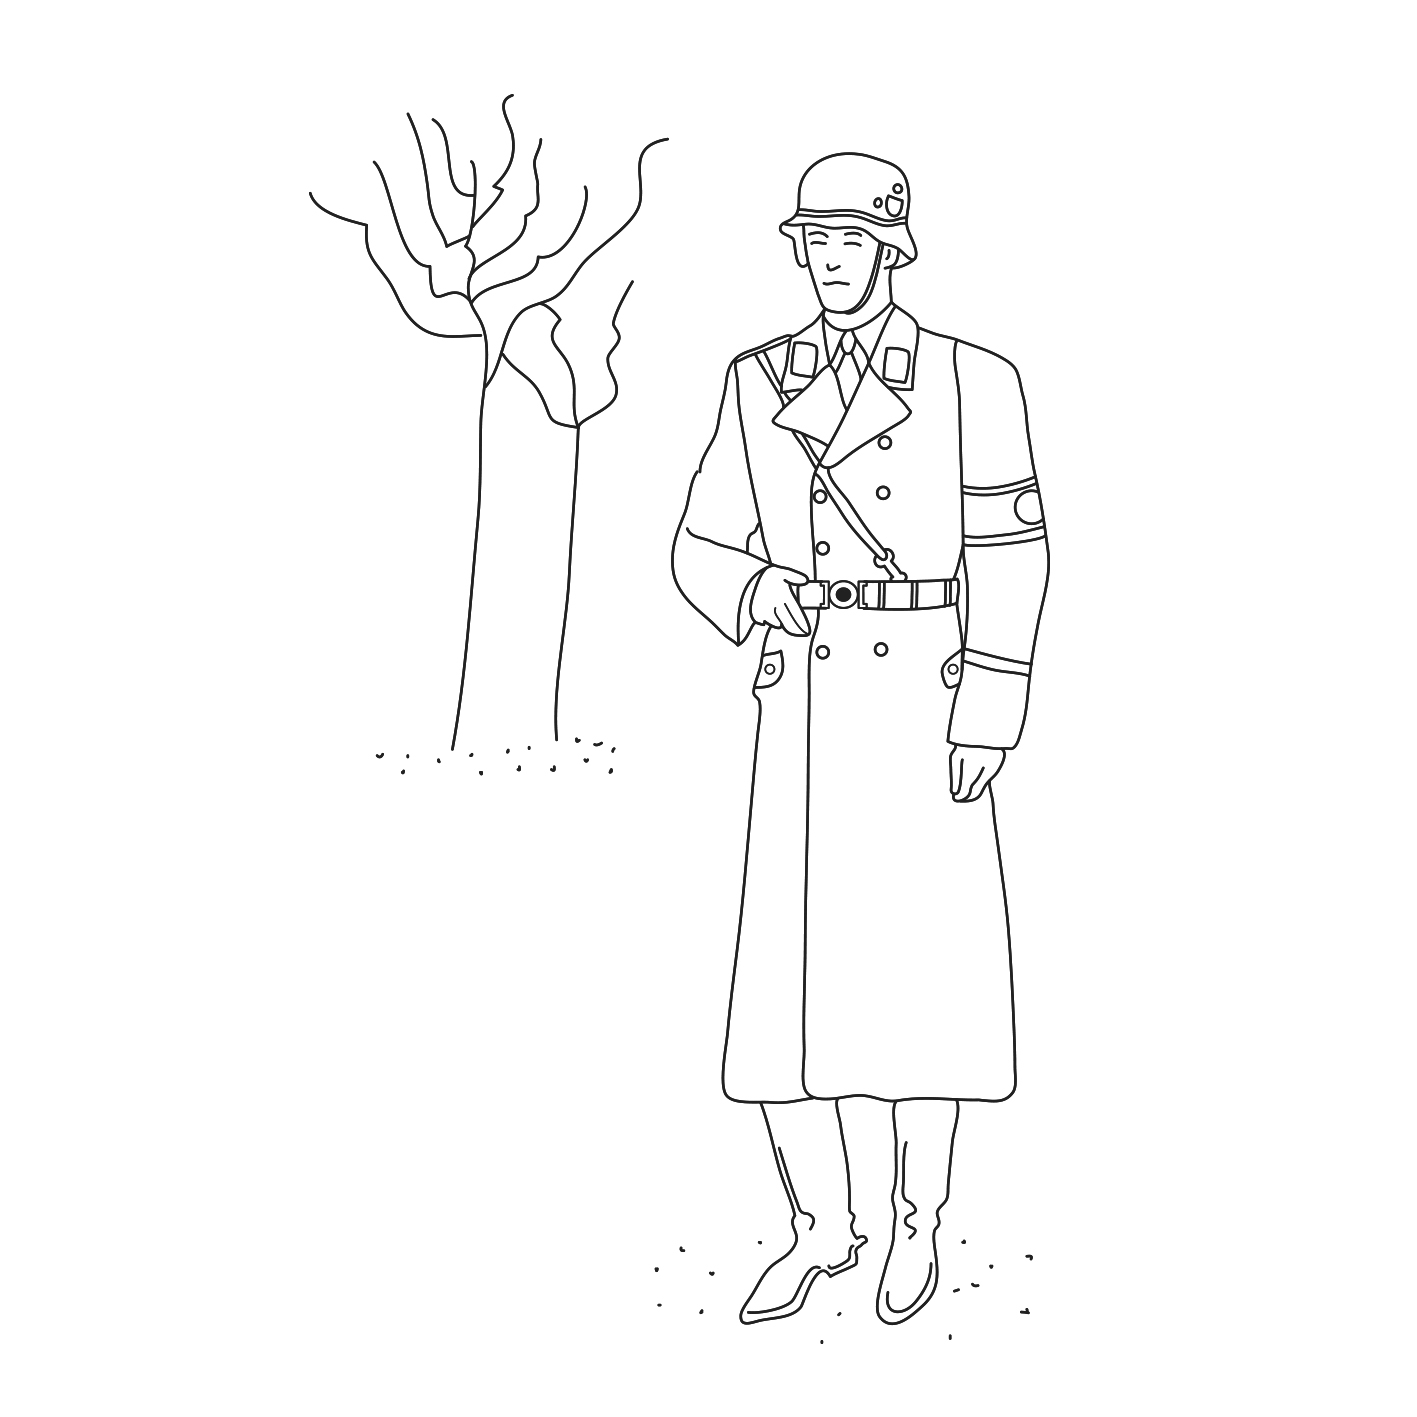 German SS Soldier and tree